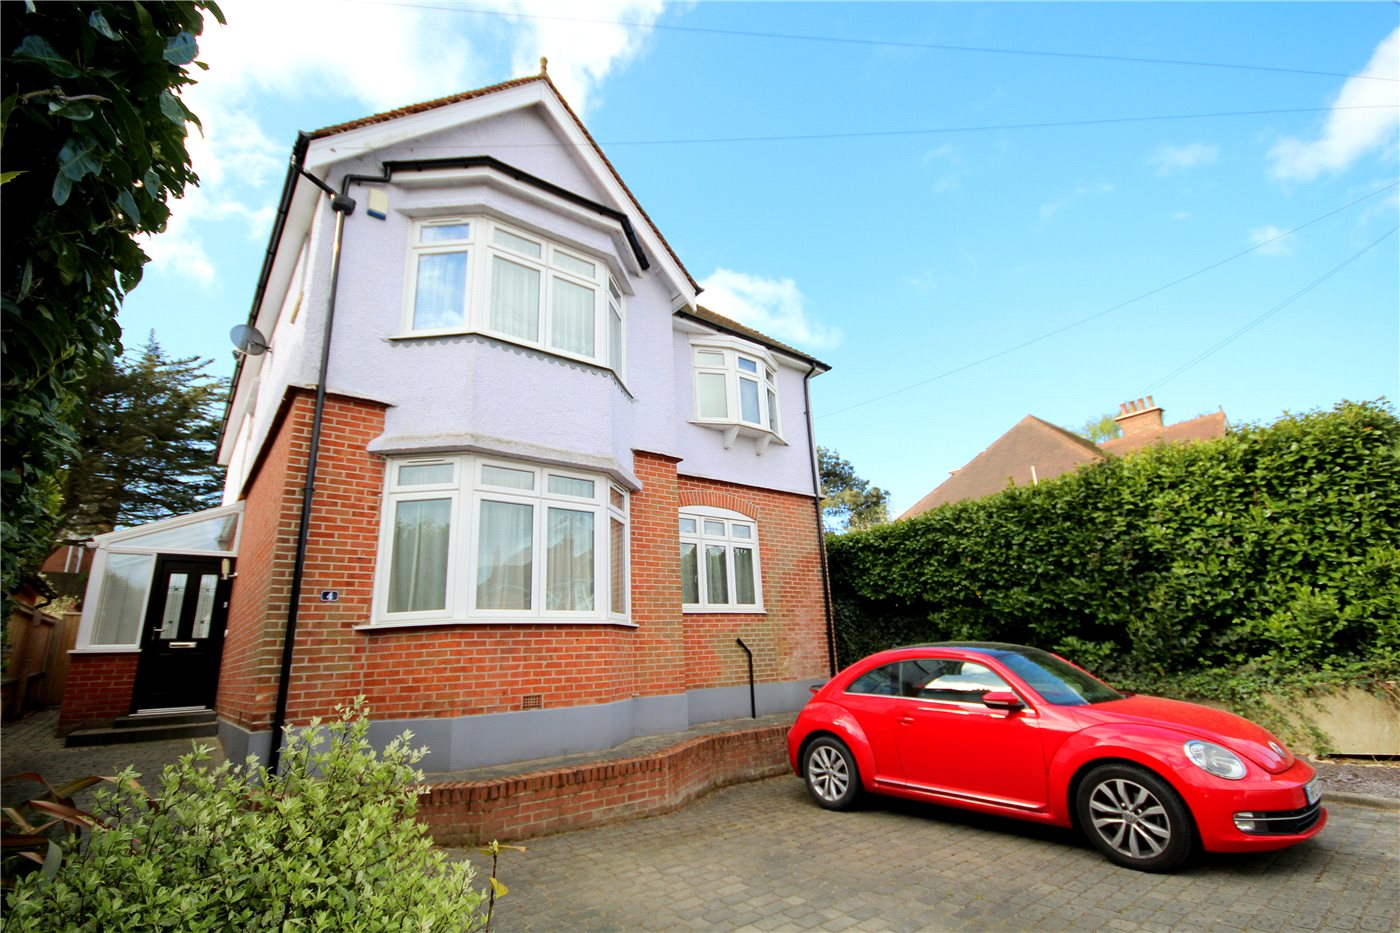 4 Bedrooms Detached House for sale in Birchwood Road, Parkstone, Poole, BH14